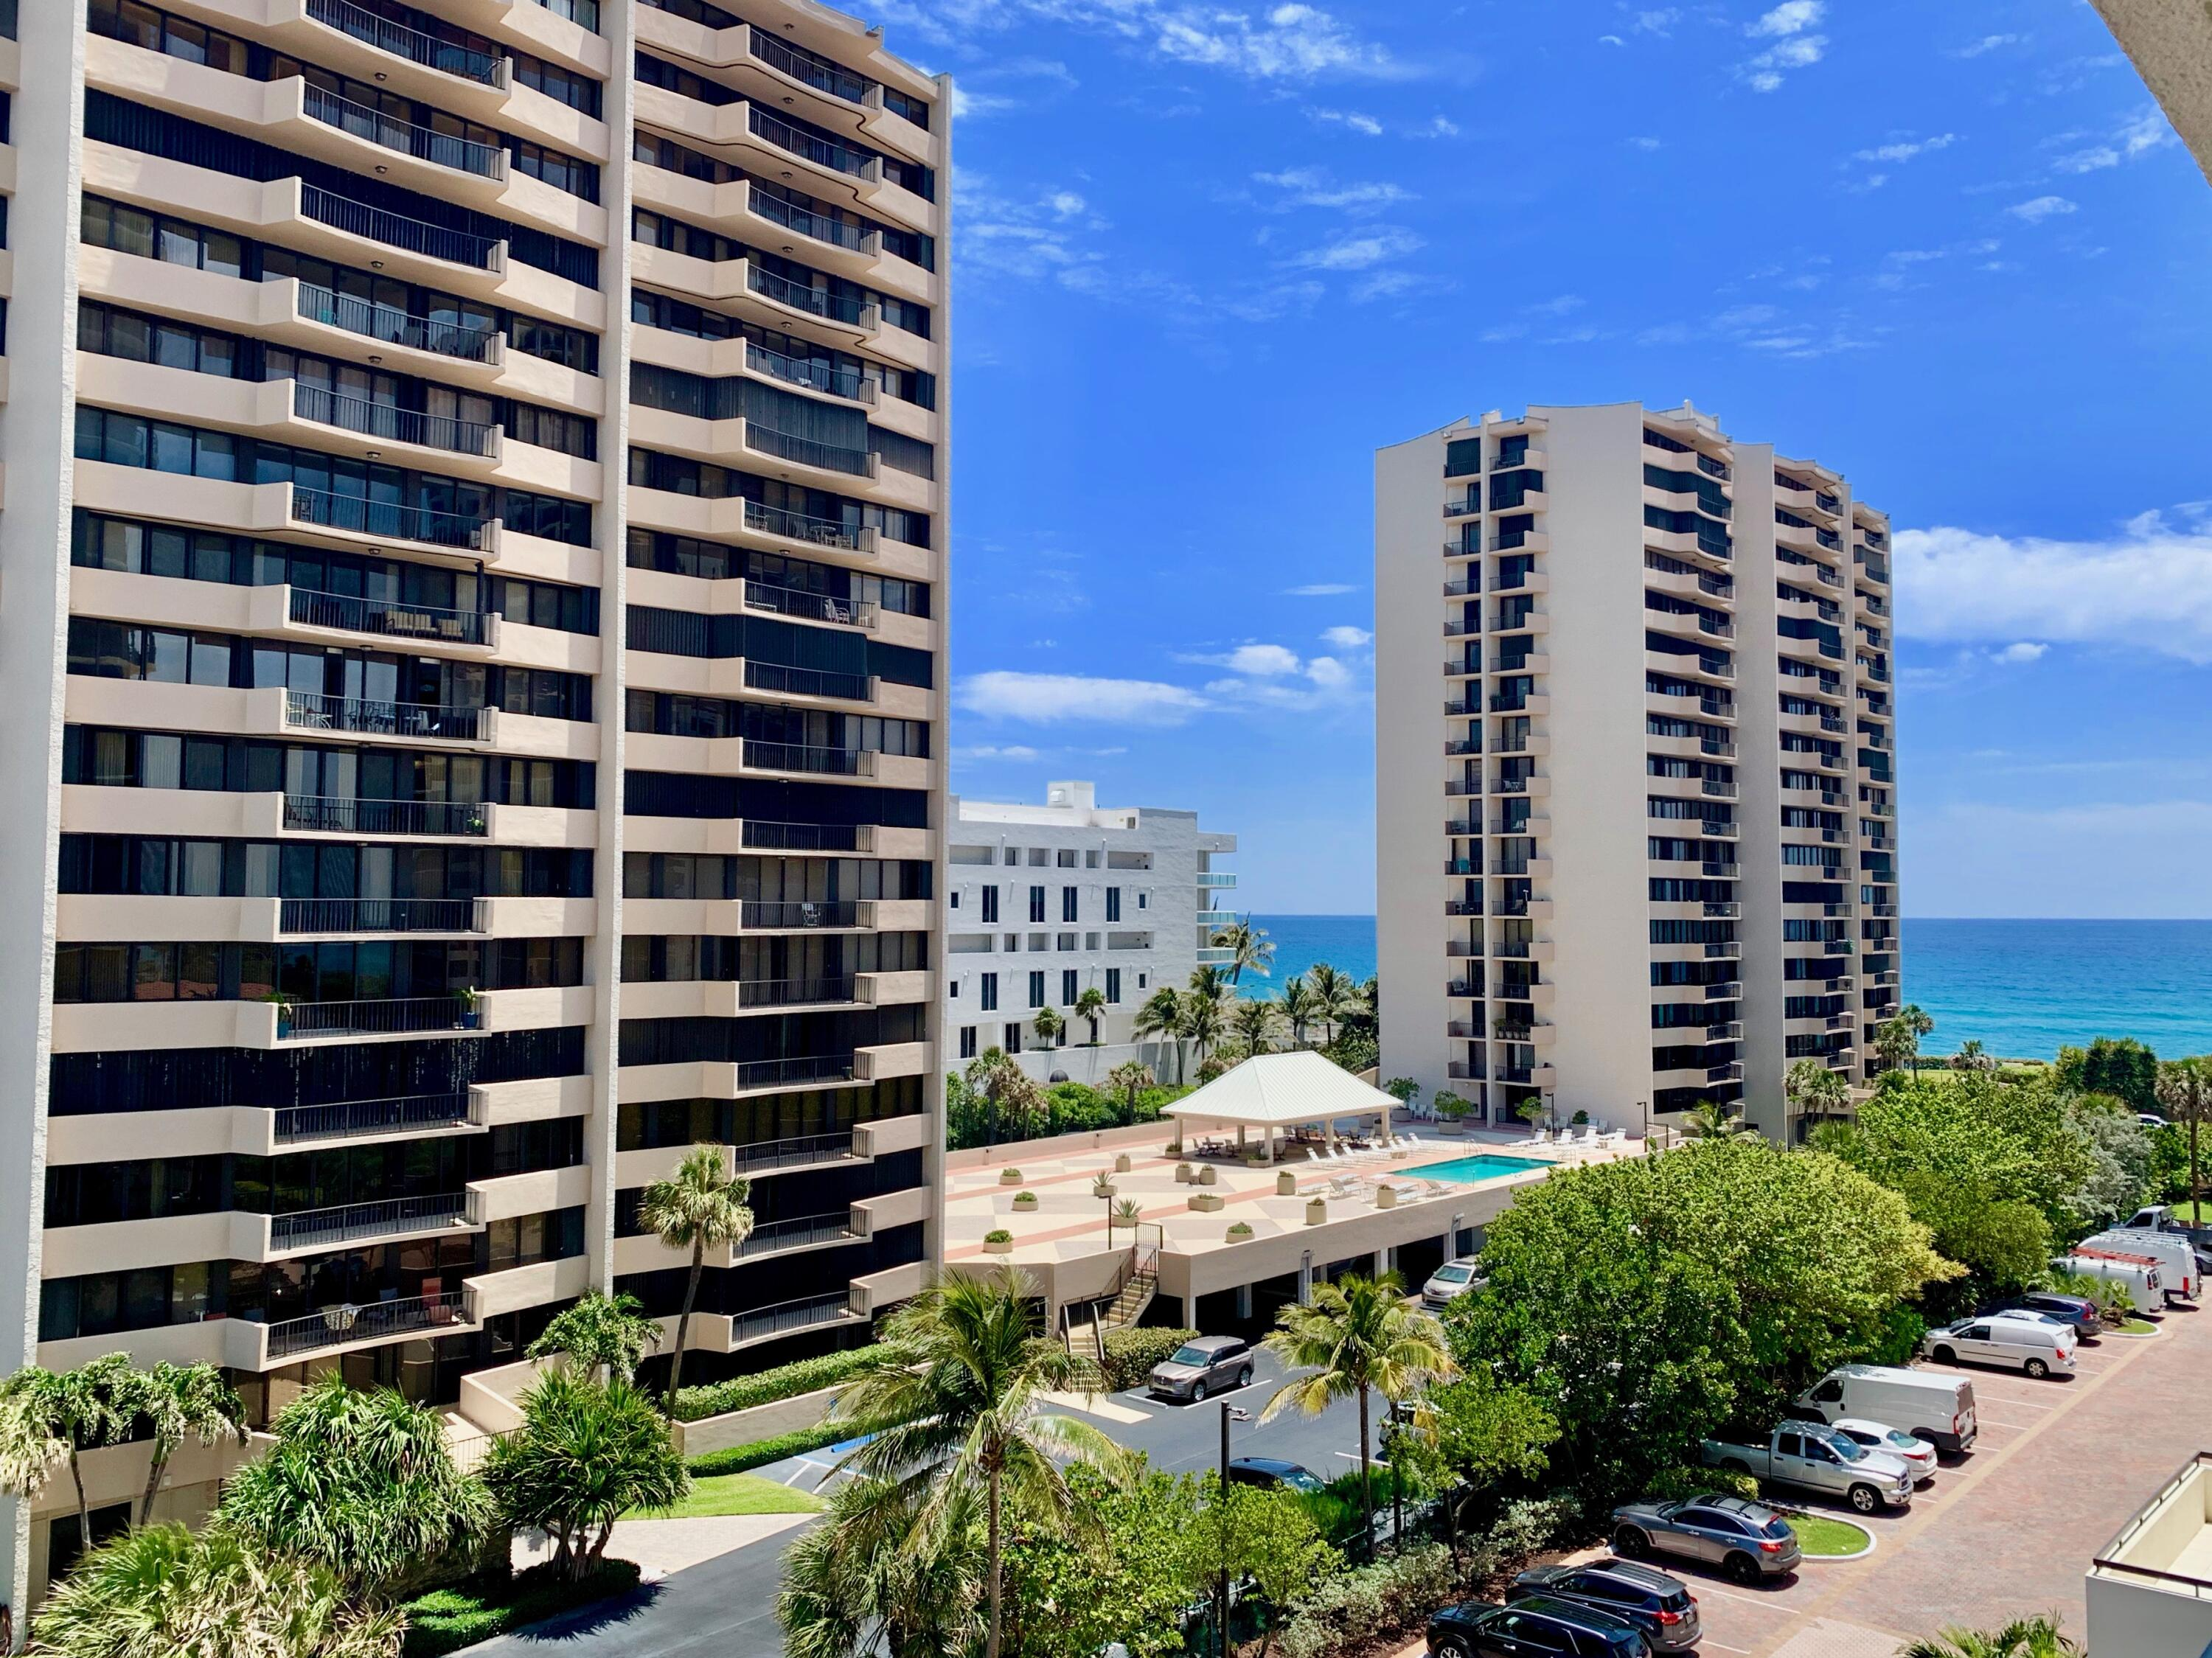 COMPLETELY REMODELED 2BR 2BA oceanfront condo with all tile flooring, newer appliances + AC. PLUS ALL IMPACT GLASS Sliding Doors and Covered garage parking space #205. Interior full size laundry room. Storage Locker #85 lobby. South facing balcony off living areas and master BR plus bonus balcony over pool deck off kitchen area. Enjoy the split bedroom spacious and open floor plan. Cote D'Azur is located mid Singer Island and features 2 Towers, unmanned security gate, tennis courts, heated pool and elevated deck, fitness facilities with sauna, library meeting room, beach walkover to the beautiful freeform Singer Island beaches. Rentals OK Year 1 - 2x per year, 90 day minimum. On Site management and maintenance staff. QUALITY CONDO with low overhead compared to other oceanfront condos.